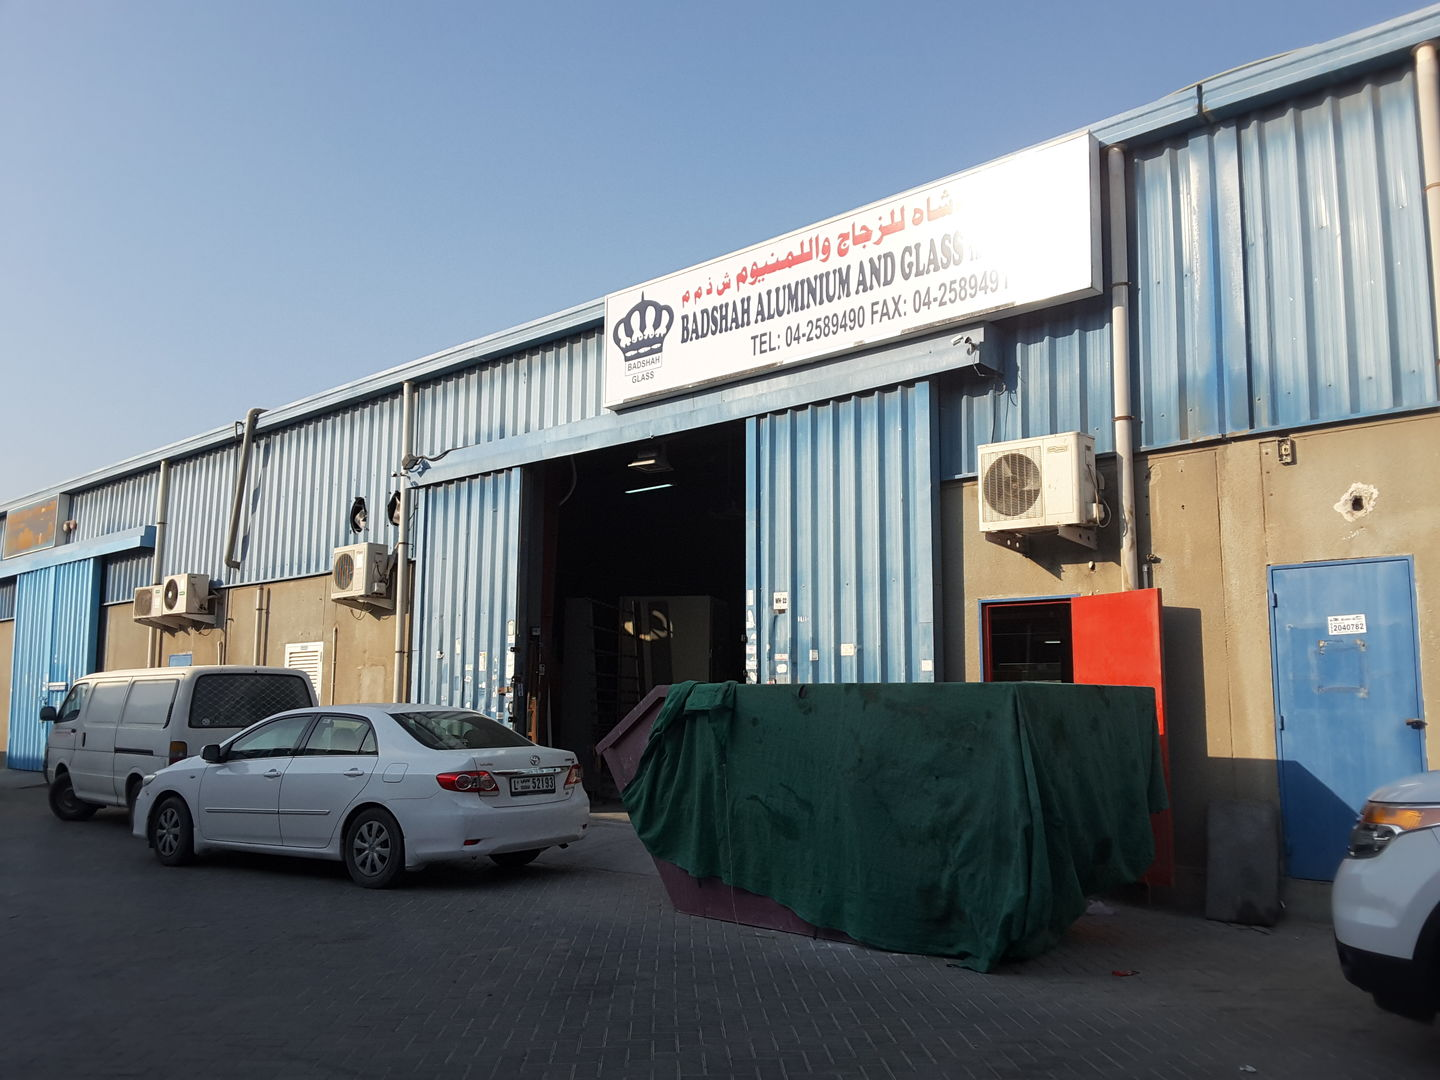 HiDubai-business-badshah-aluminium-and-glass-trading-co-b2b-services-distributors-wholesalers-al-qusais-industrial-1-dubai-2